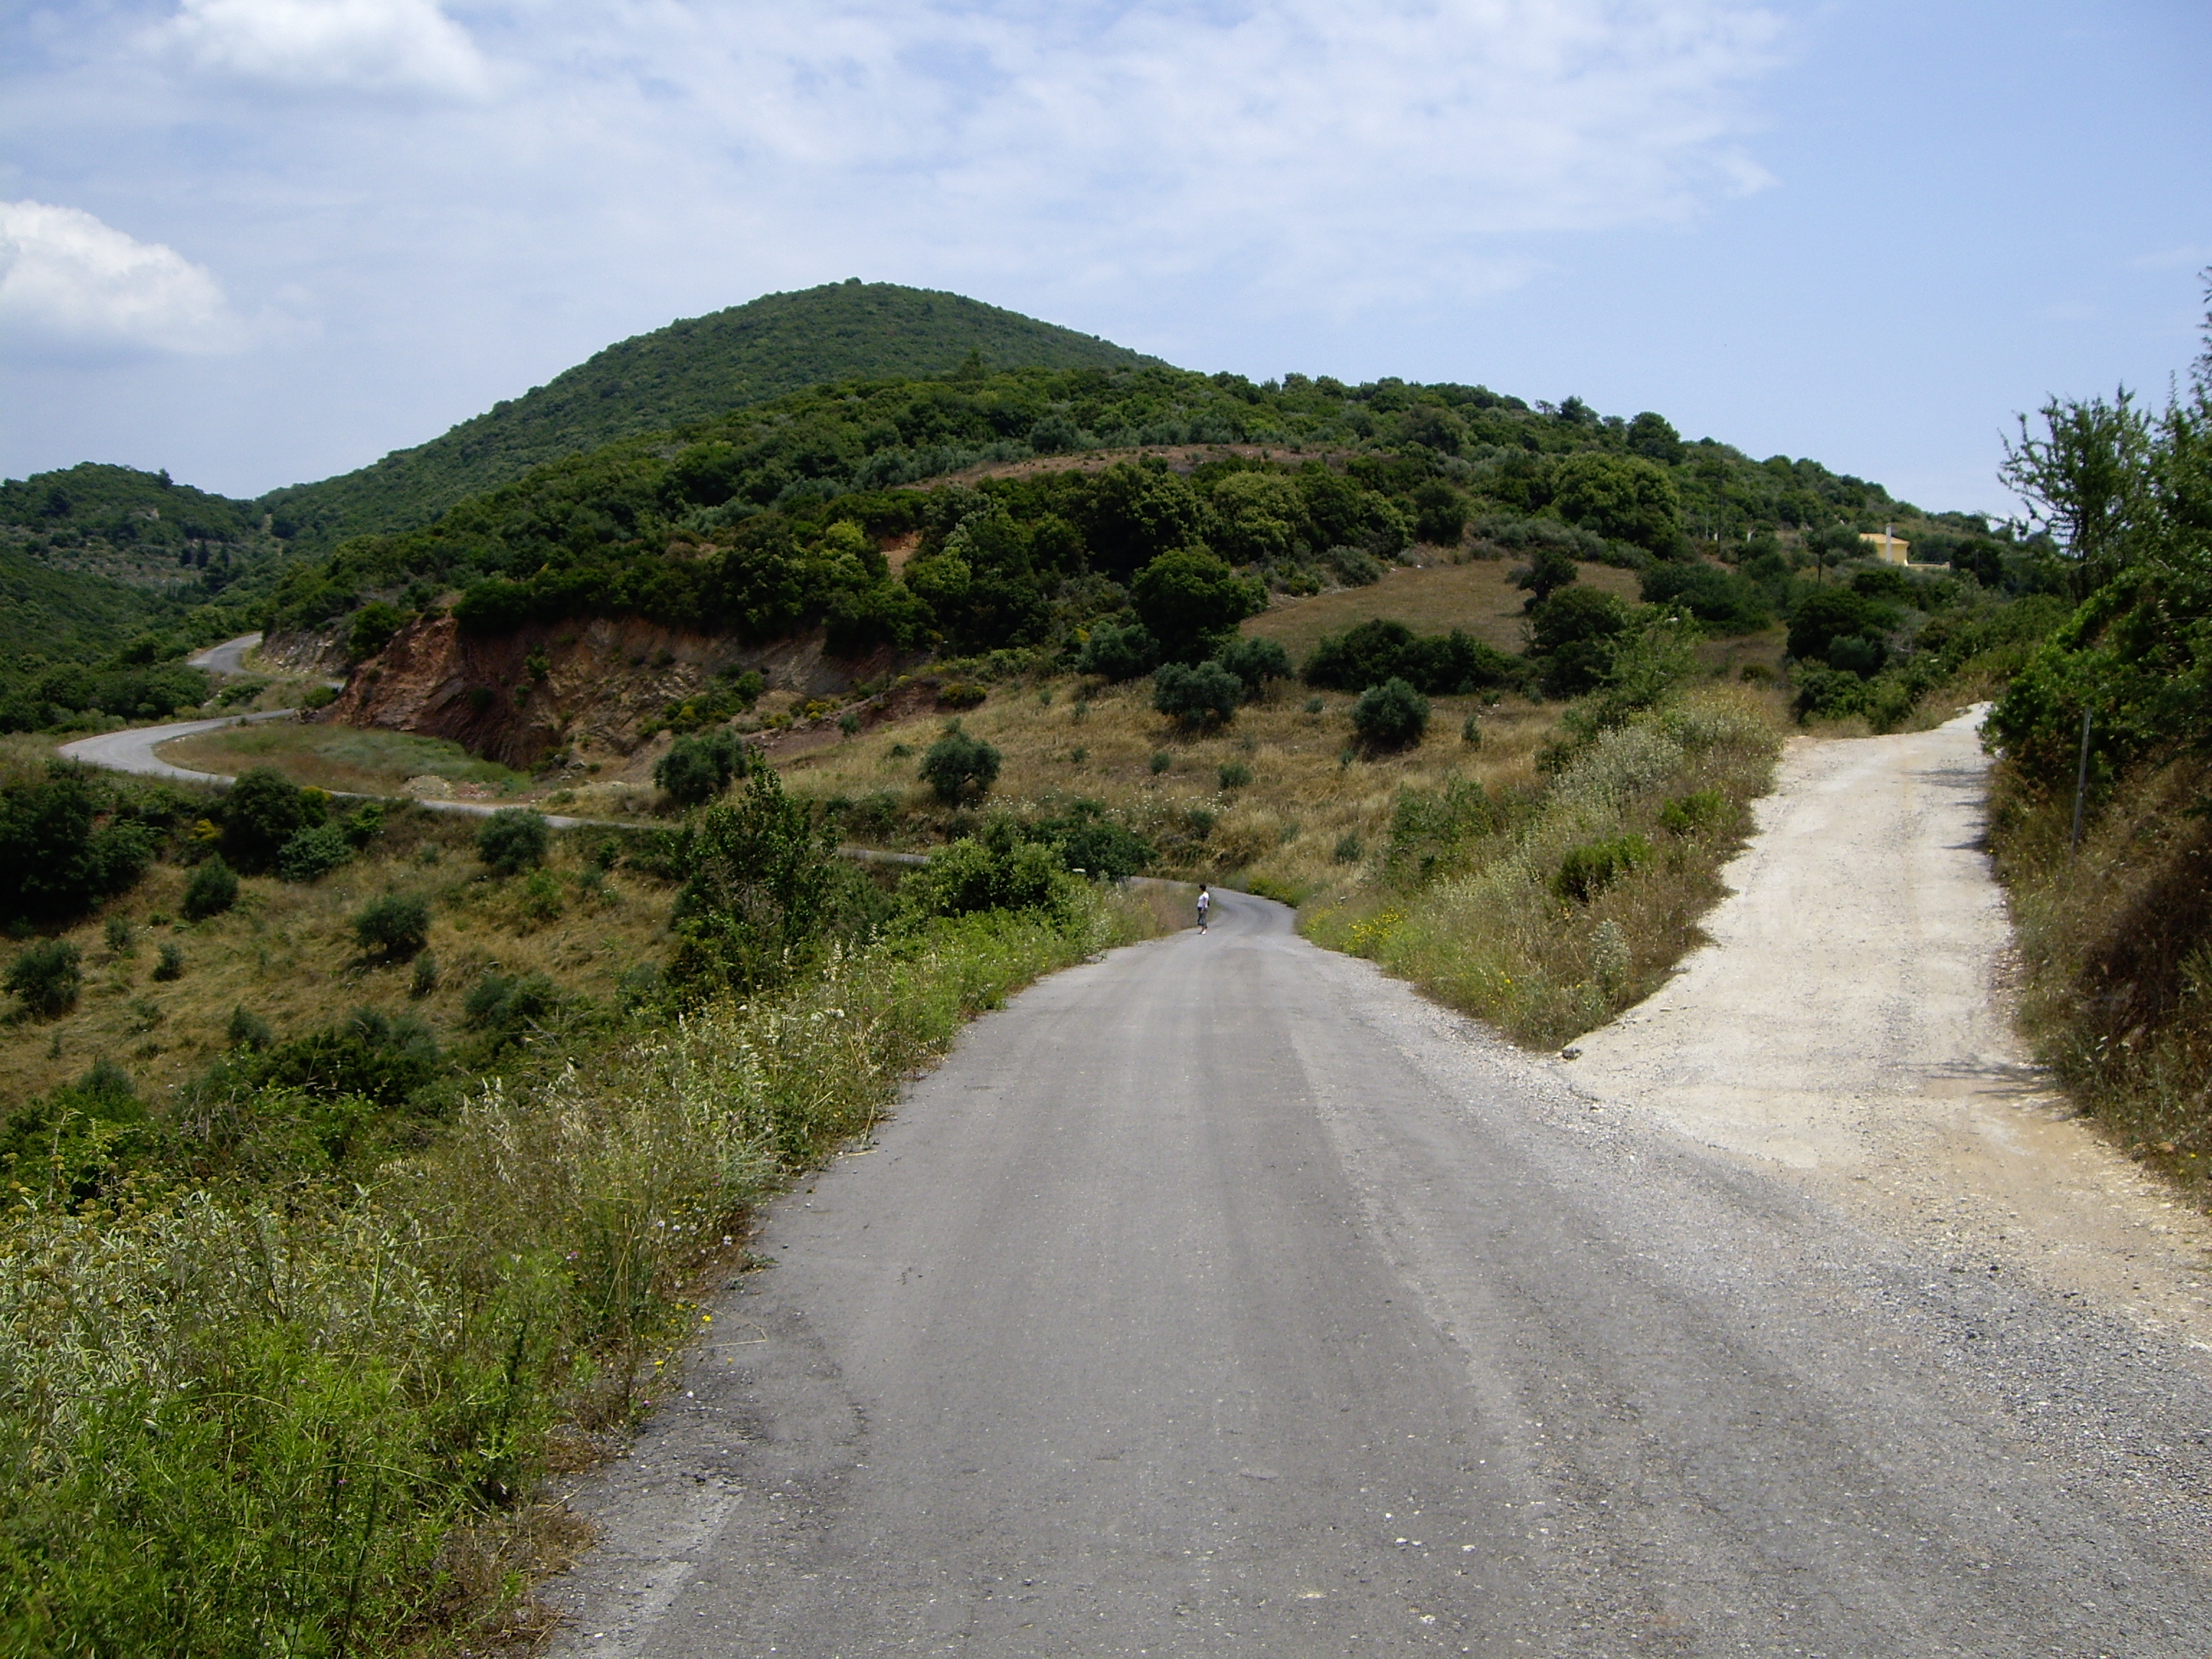 Property for Sale, Greece, Peloponnese, Agaliani, Plot of Land 20169